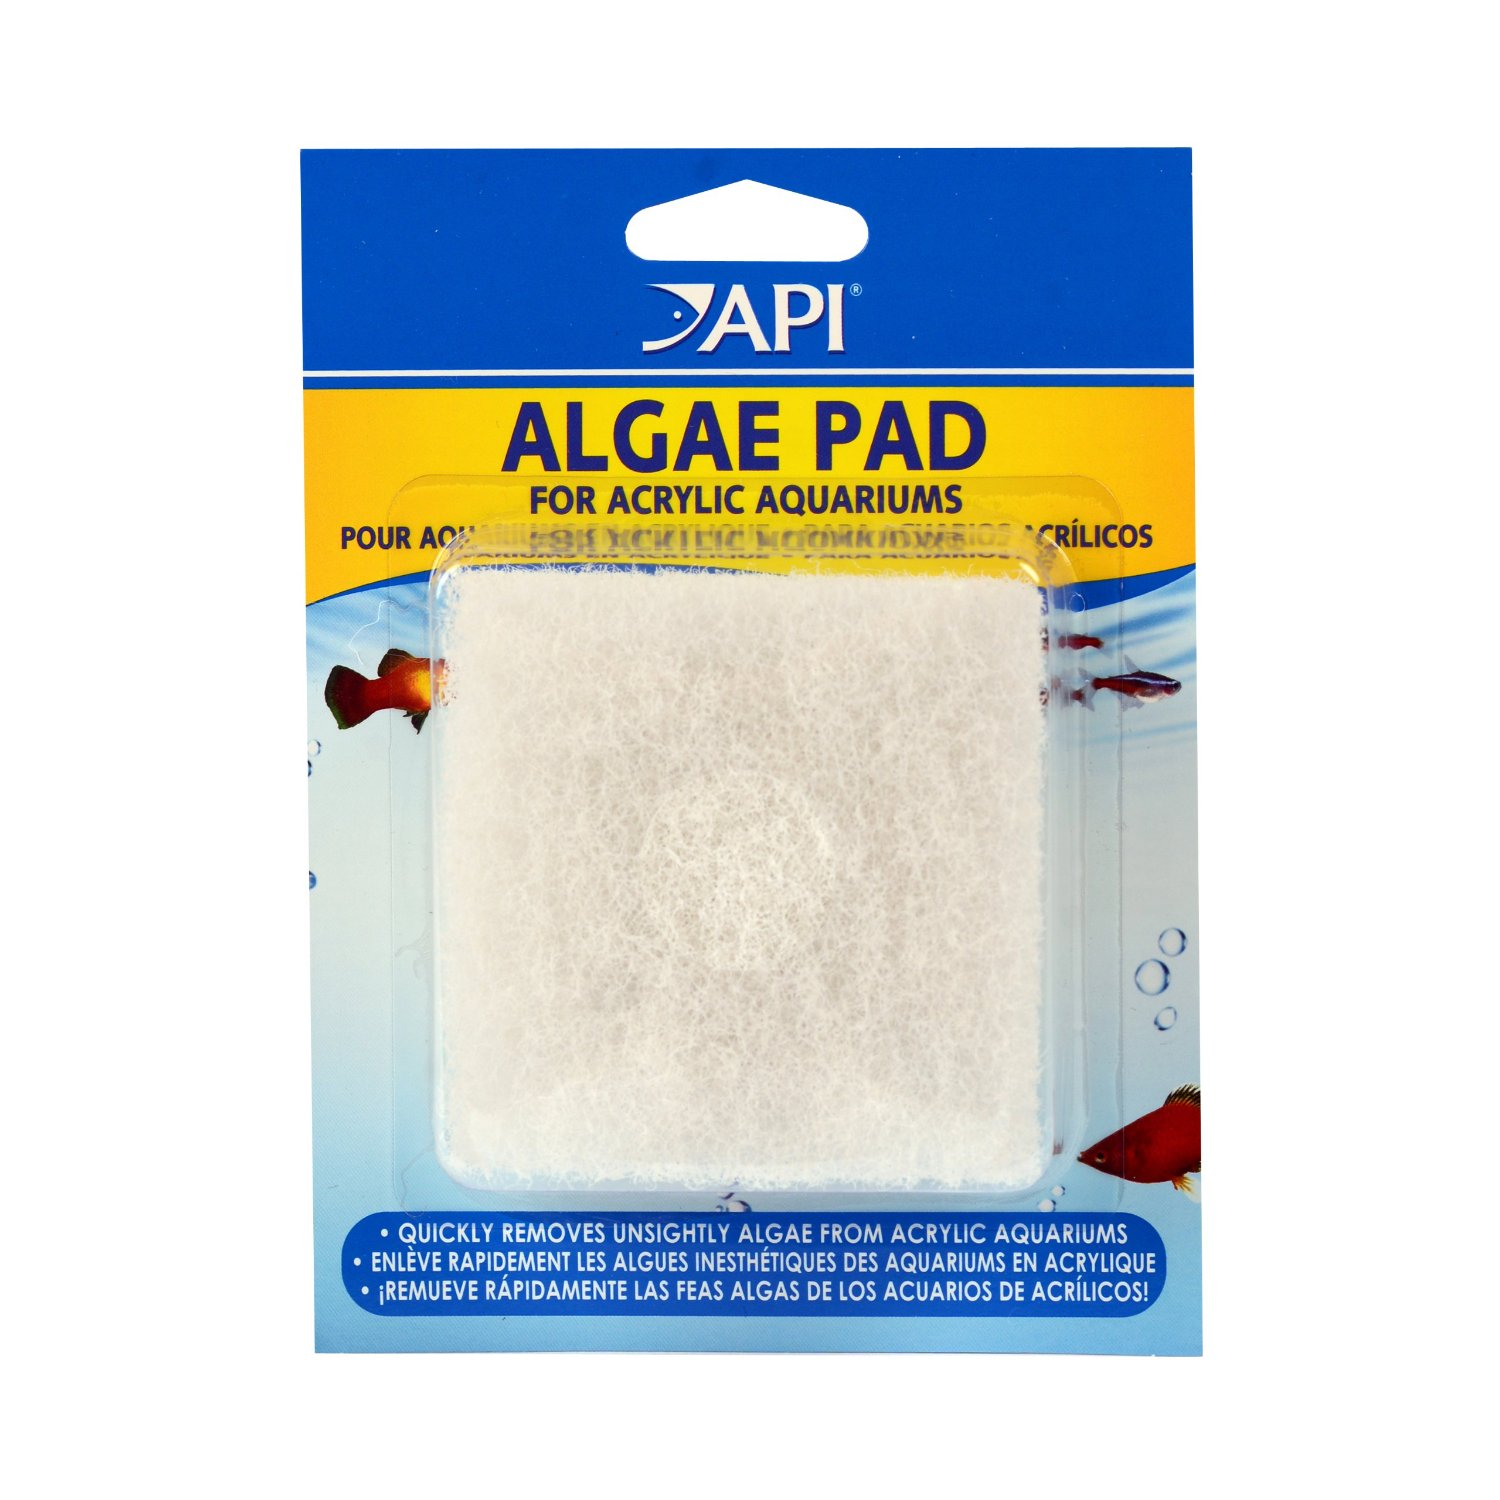 API Algae Pad for Acrylic Aquariums CE133